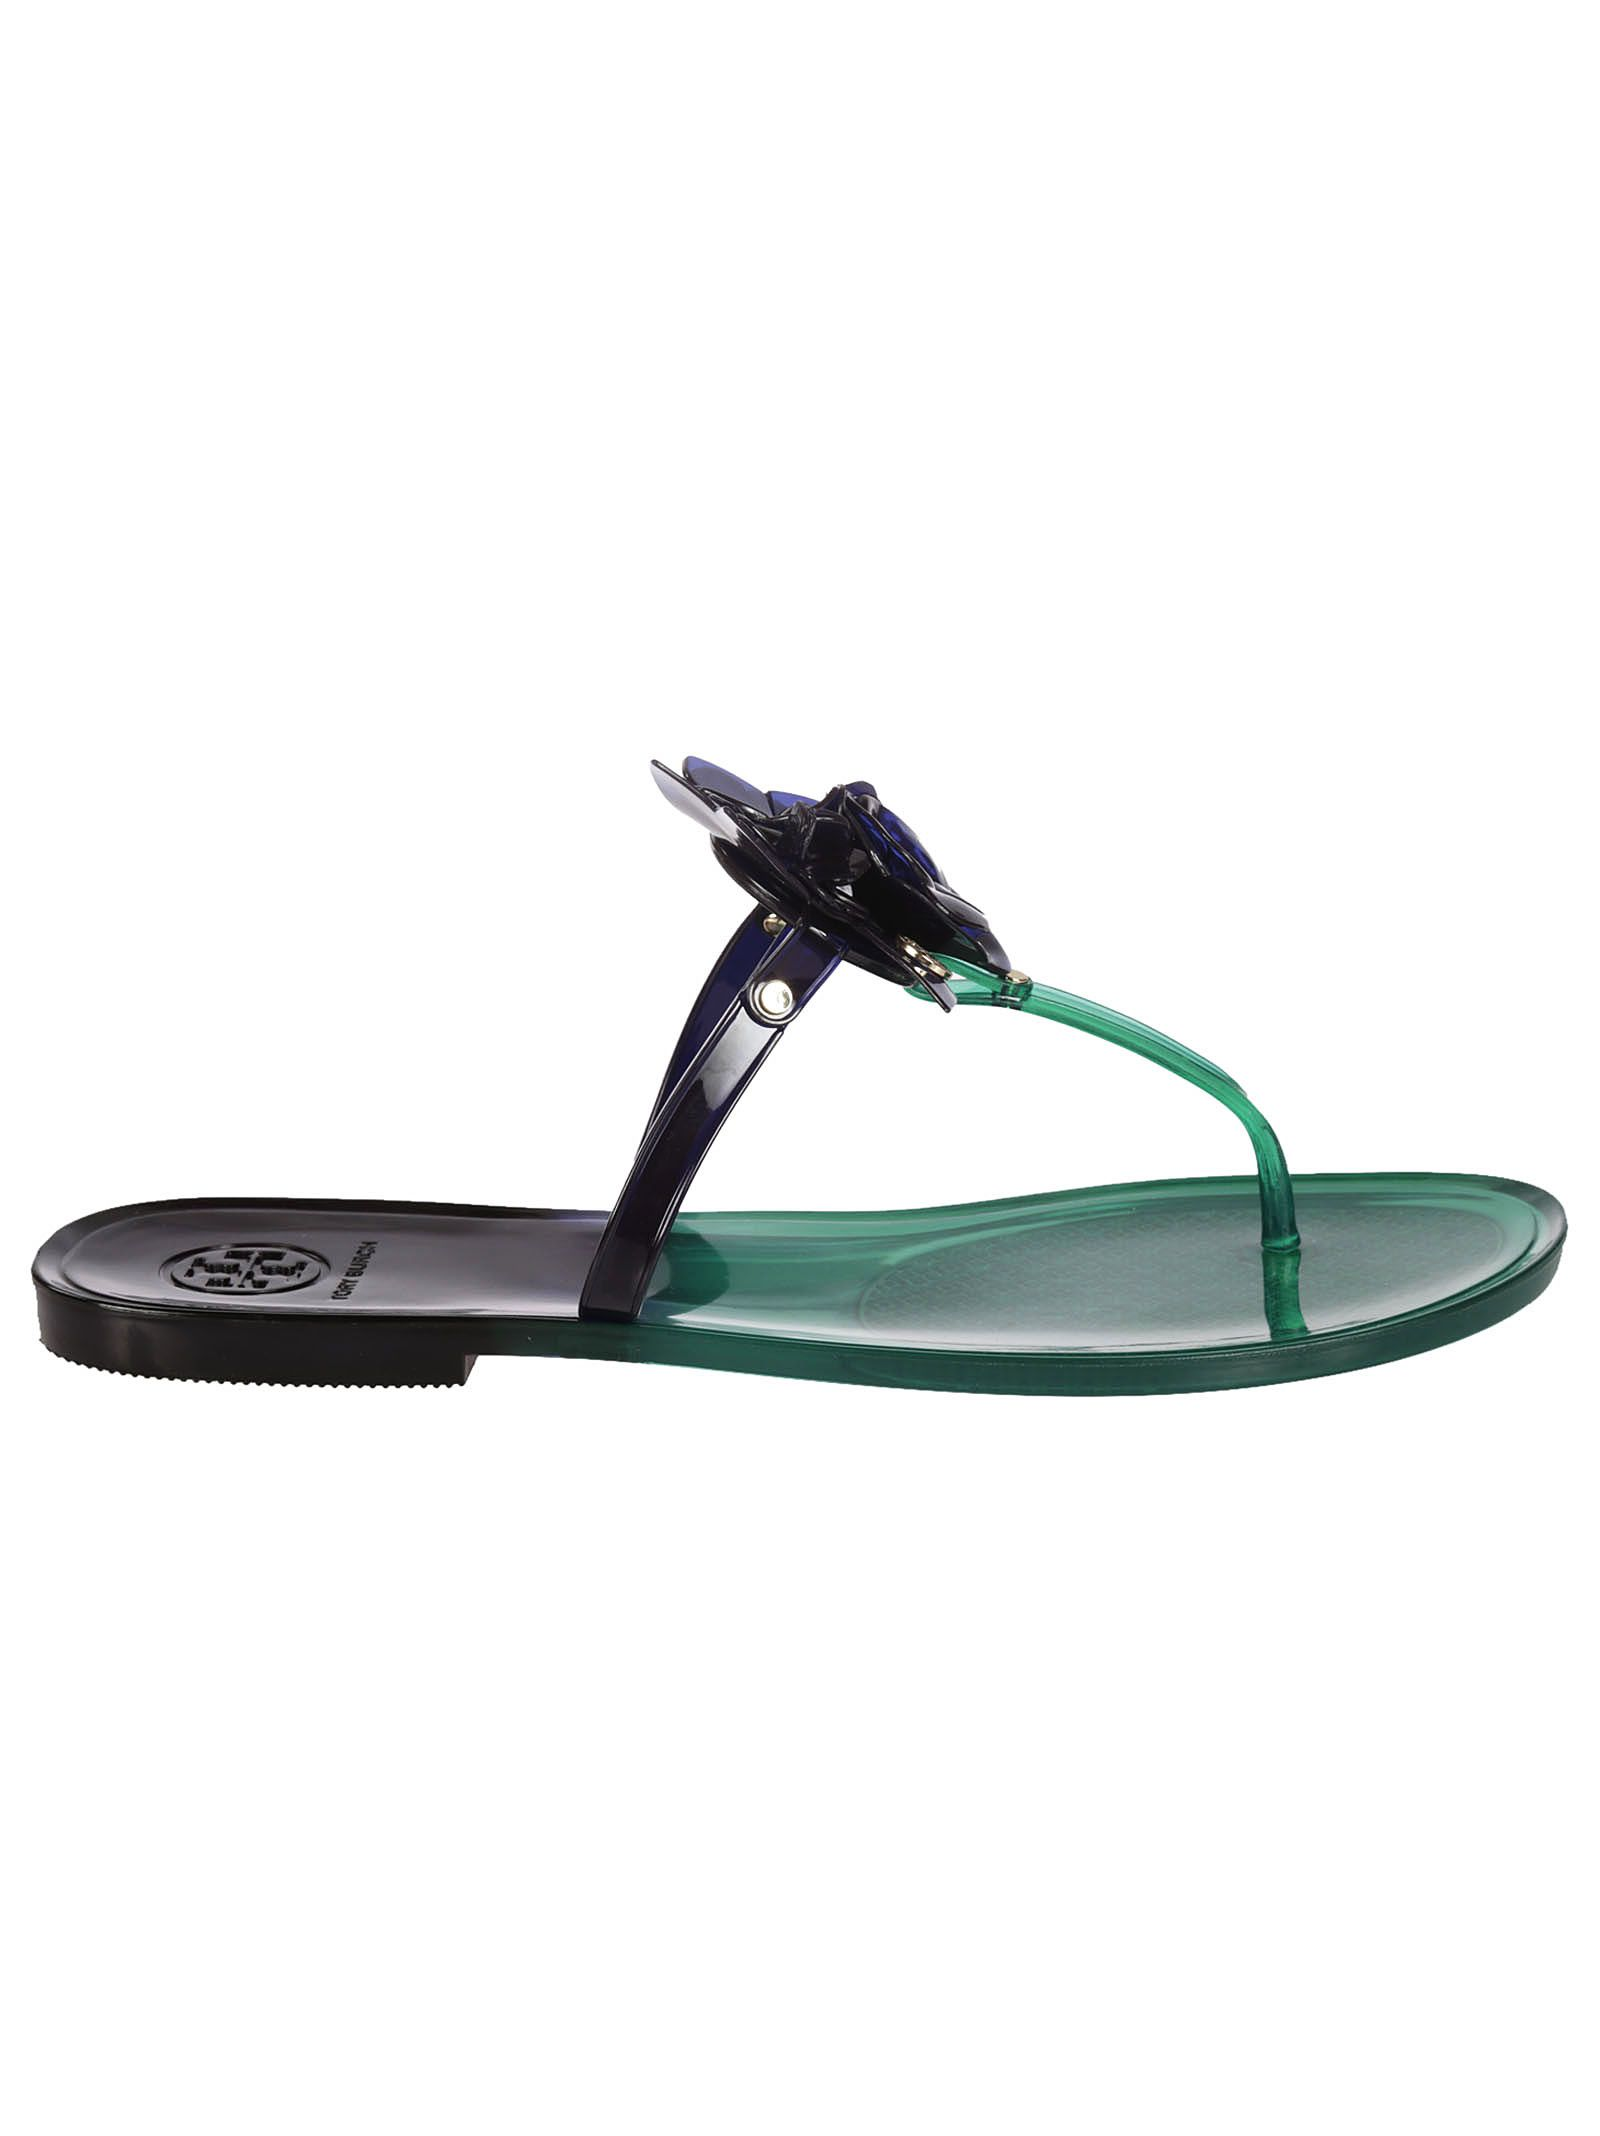 5d48001d6cda Tory Burch Jelly Blossom Sandals - Emerald - 6693396